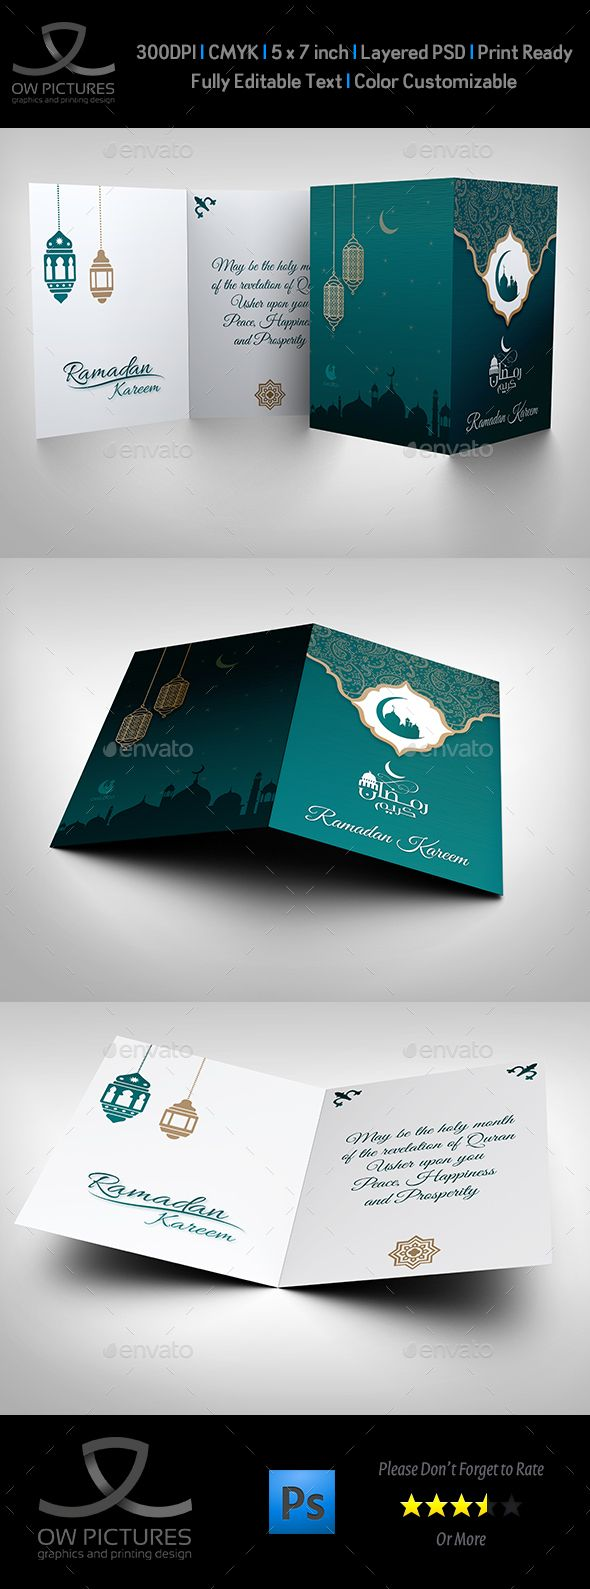 wedding invitation design psd%0A Buy Wedding Invitation Card Template by OWPictures on GraphicRiver  Invitation  Card Description  Wedding Invitation Card Template can be used to invite a